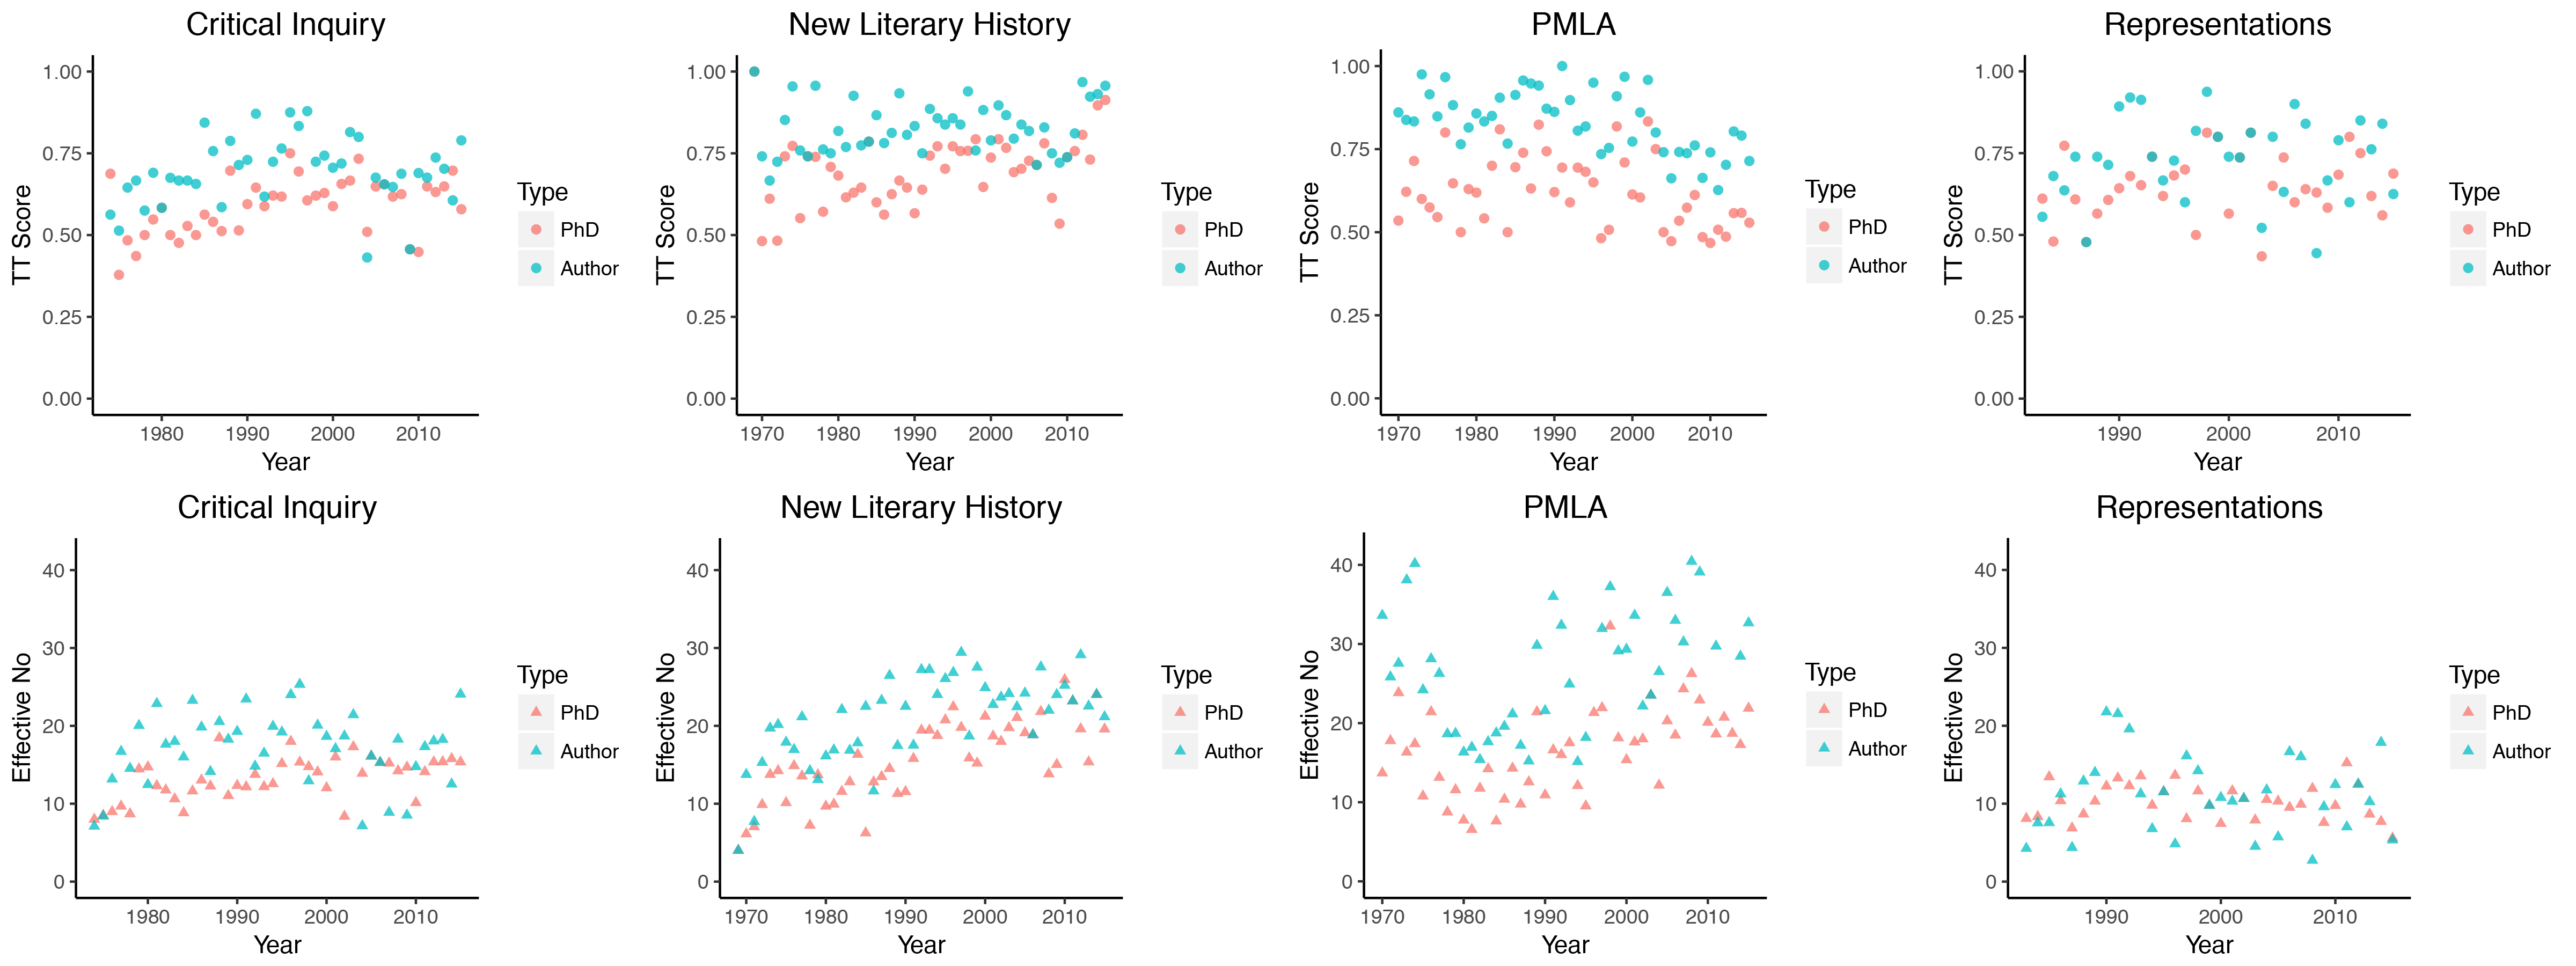 So When We Pull Apart The Four Journals, What Story Do They Tell? If We Run  A Linear Regression Model On Each Of The Journals Individually, Since 1990  There